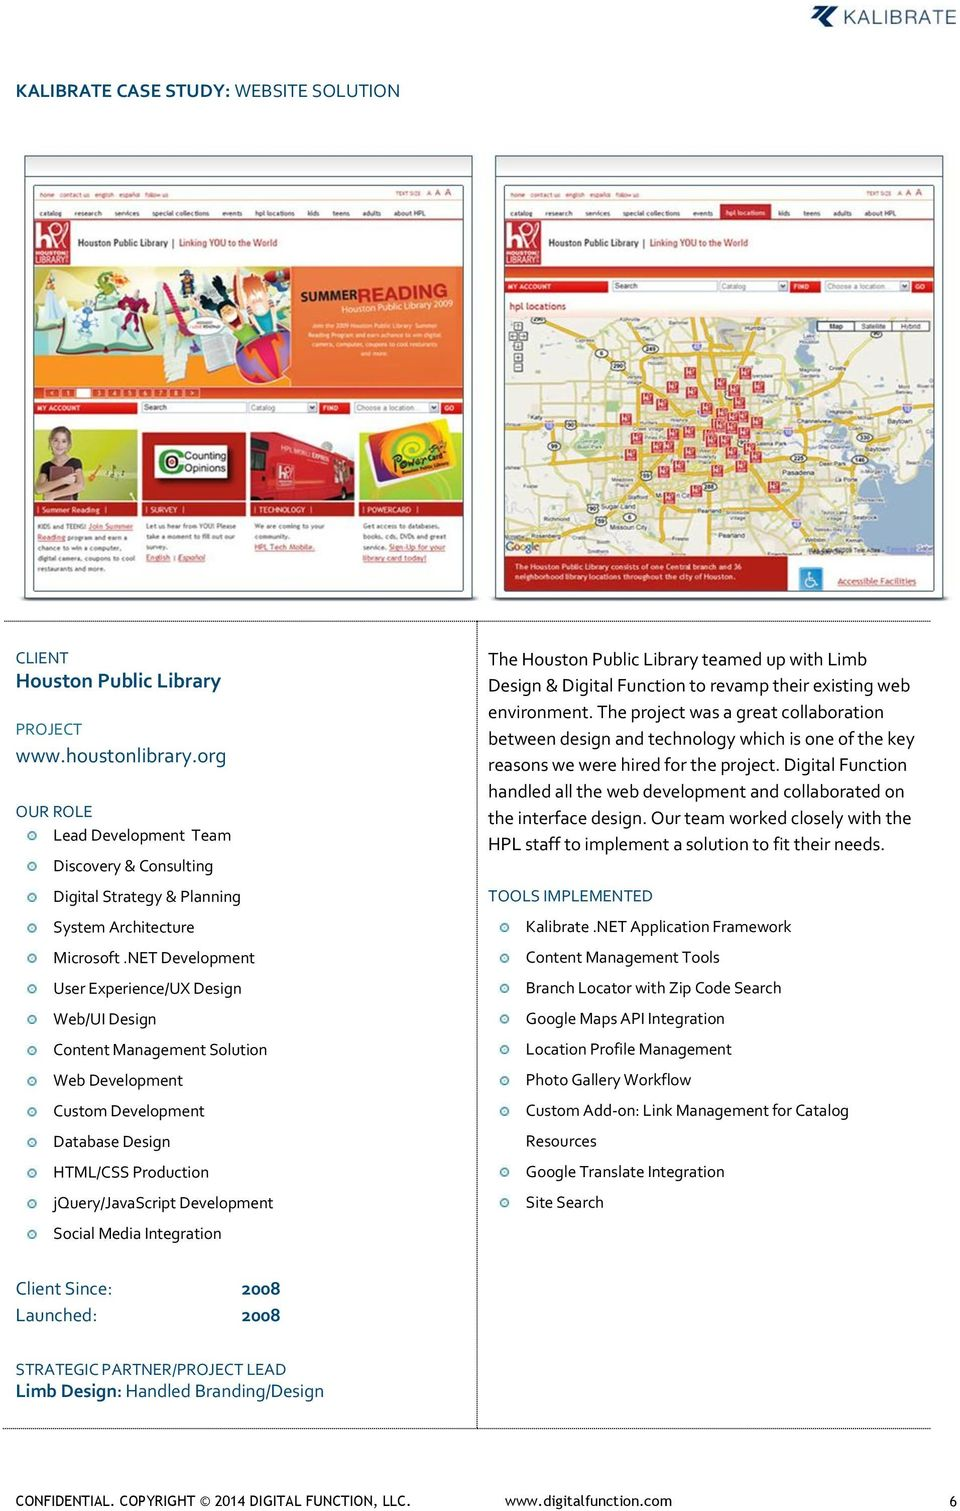 Social Media Integration The Houston Public Library teamed up with Limb Design & Digital Function to revamp their existing web environment.